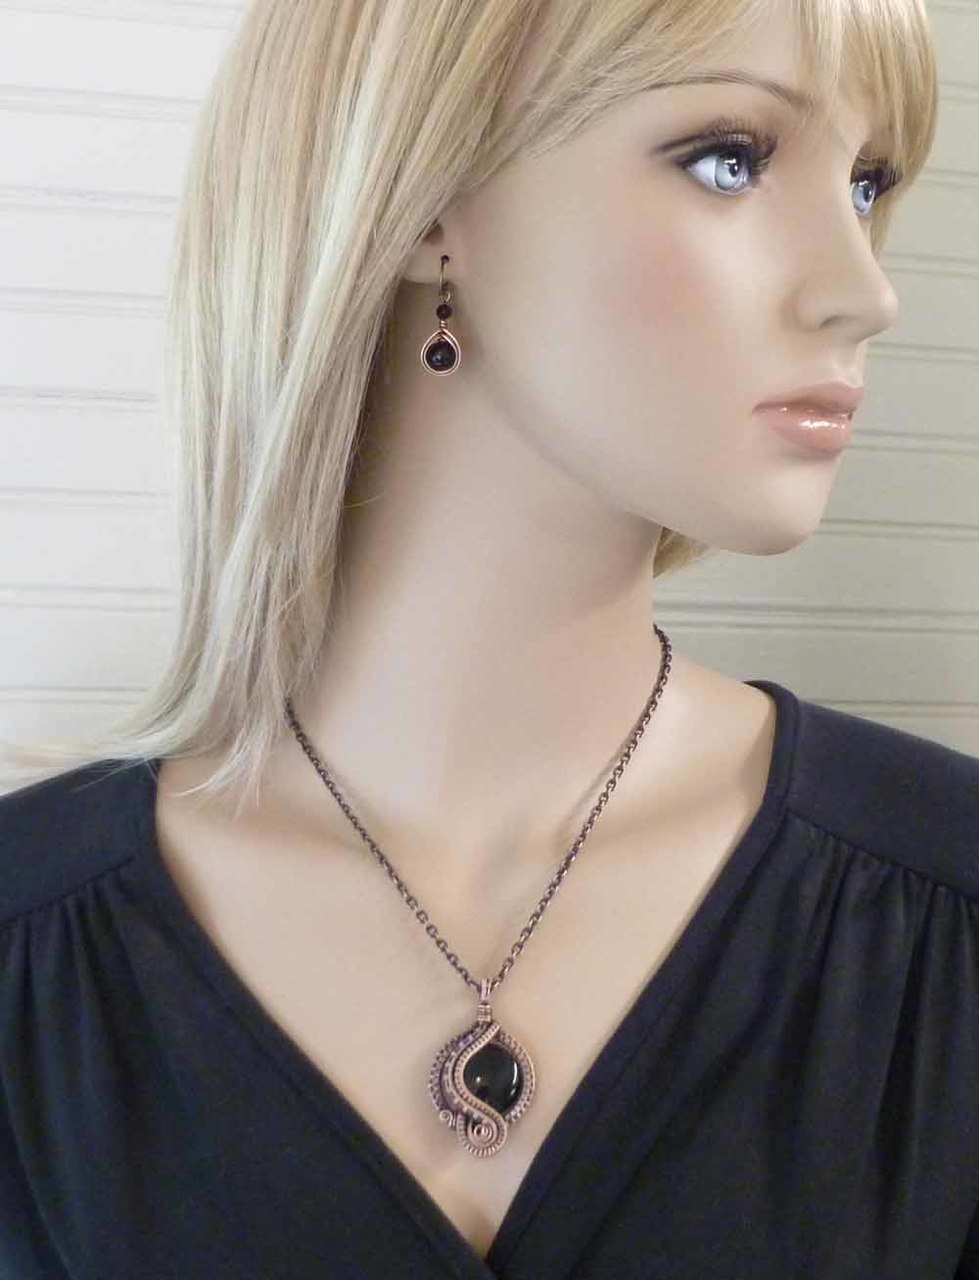 "Shown for size reference (the stone shown is Black Onyx).  Worn here on 18"" chain length."